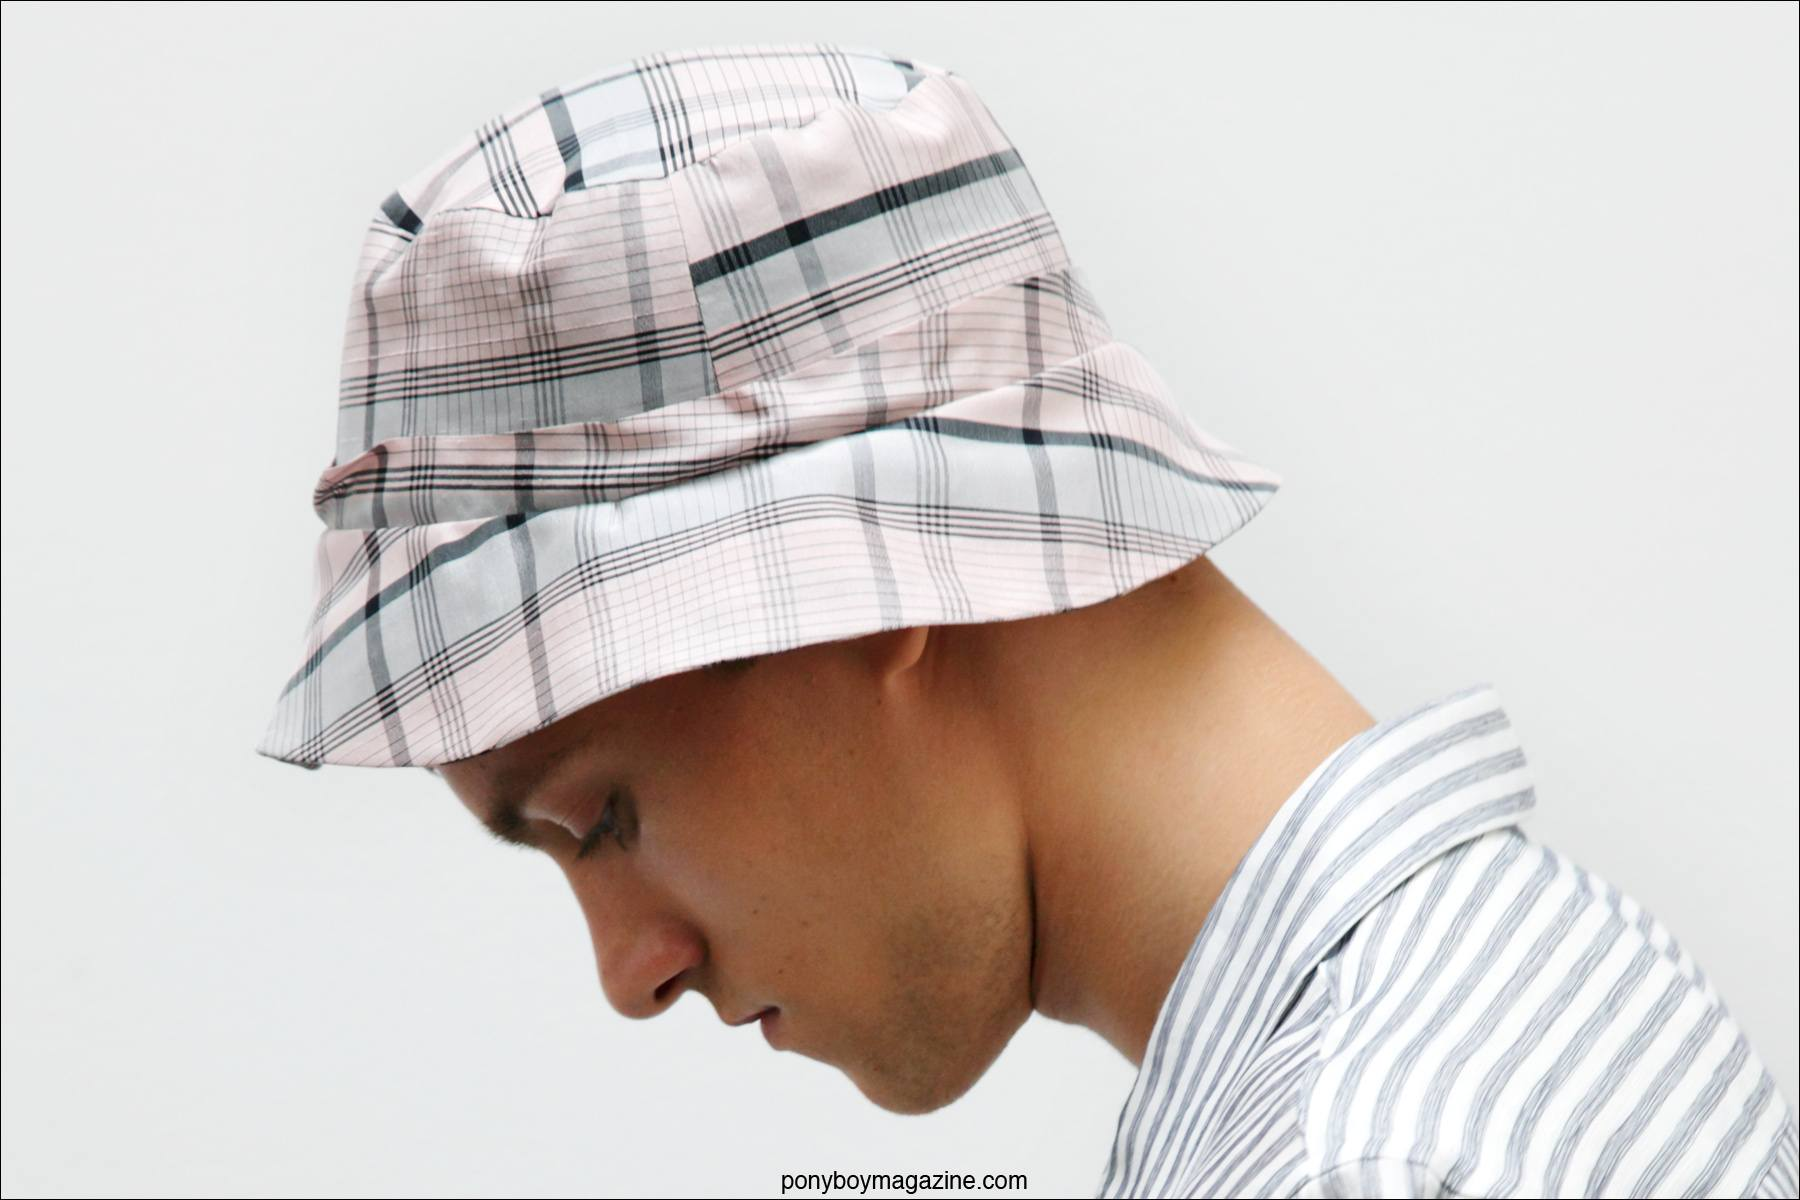 A male model wears a bucket hat for Spring/Summer 2015, designed by Duckie Brown. Photo by Alexander Thompson for Ponyboy Magazine.